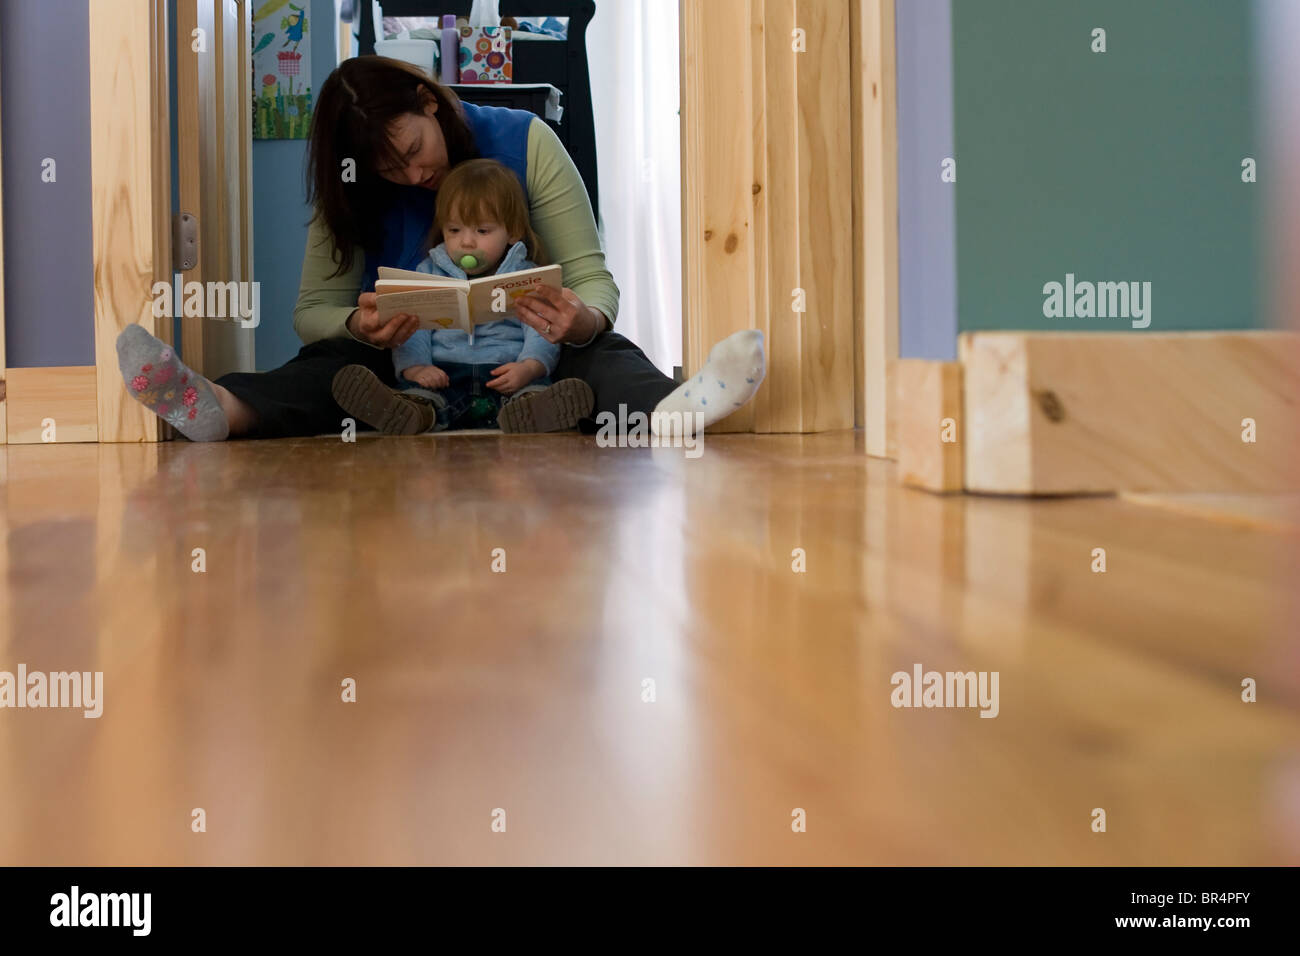 A mother reads a book to her toddler. - Stock Image